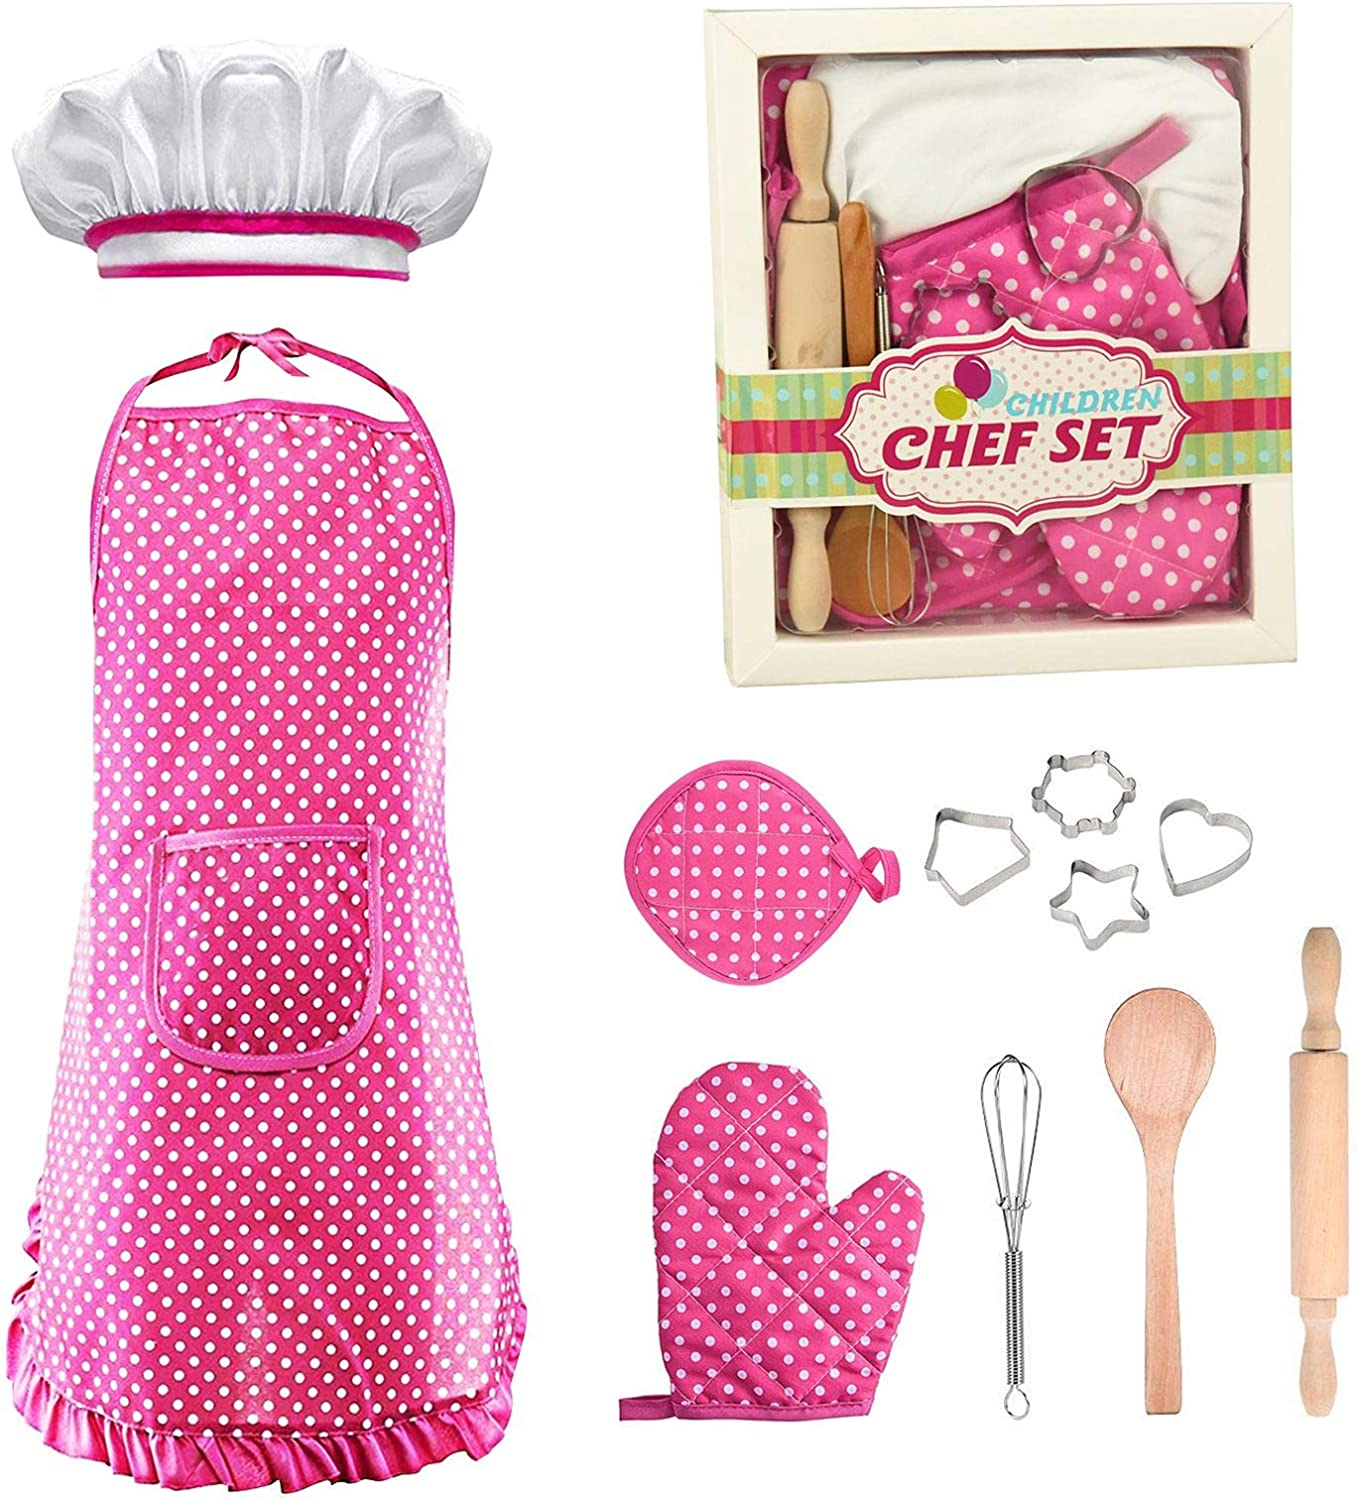 Popular Toys for 3-8 Year Old Girls Boys, Chef Costume Set for Kids Role Play Kitchen Toys Baking Set Cooking Game for Kids Apron for Little Girls Birthday Easter Gifts for Kids Age 3-8-Pink